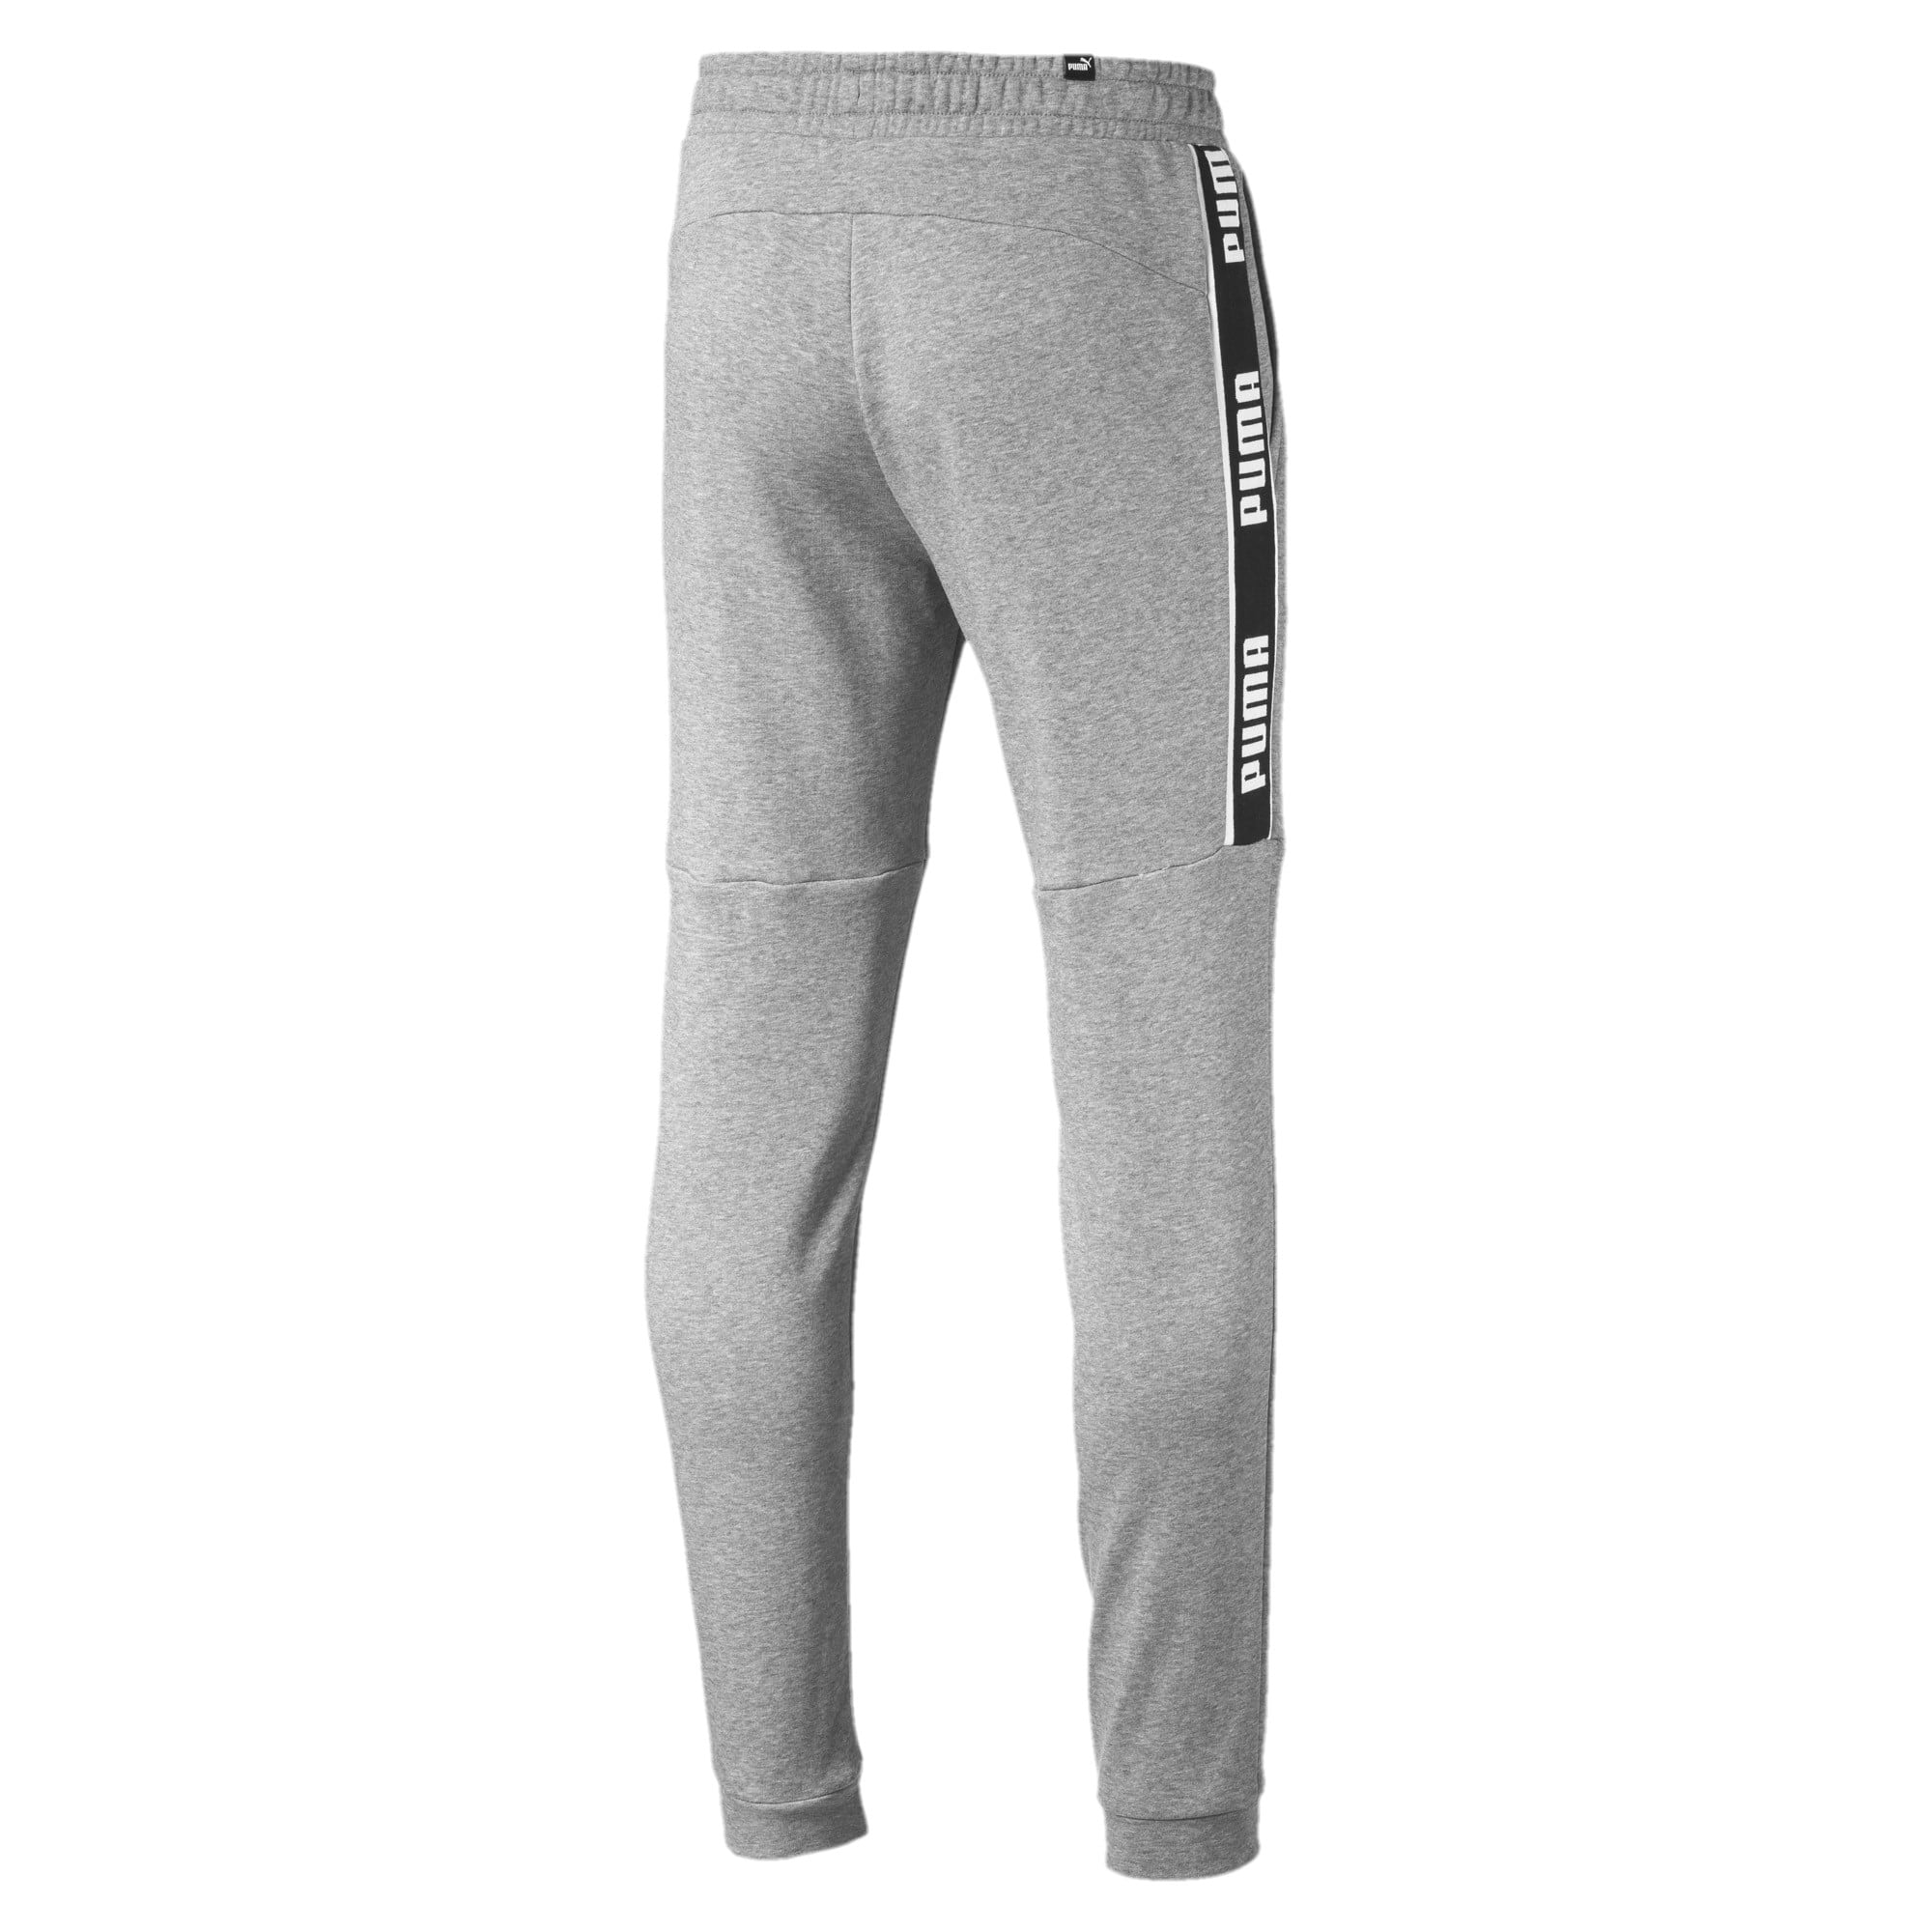 Thumbnail 5 of Amplified Herren Sweatpants, Medium Gray Heather, medium